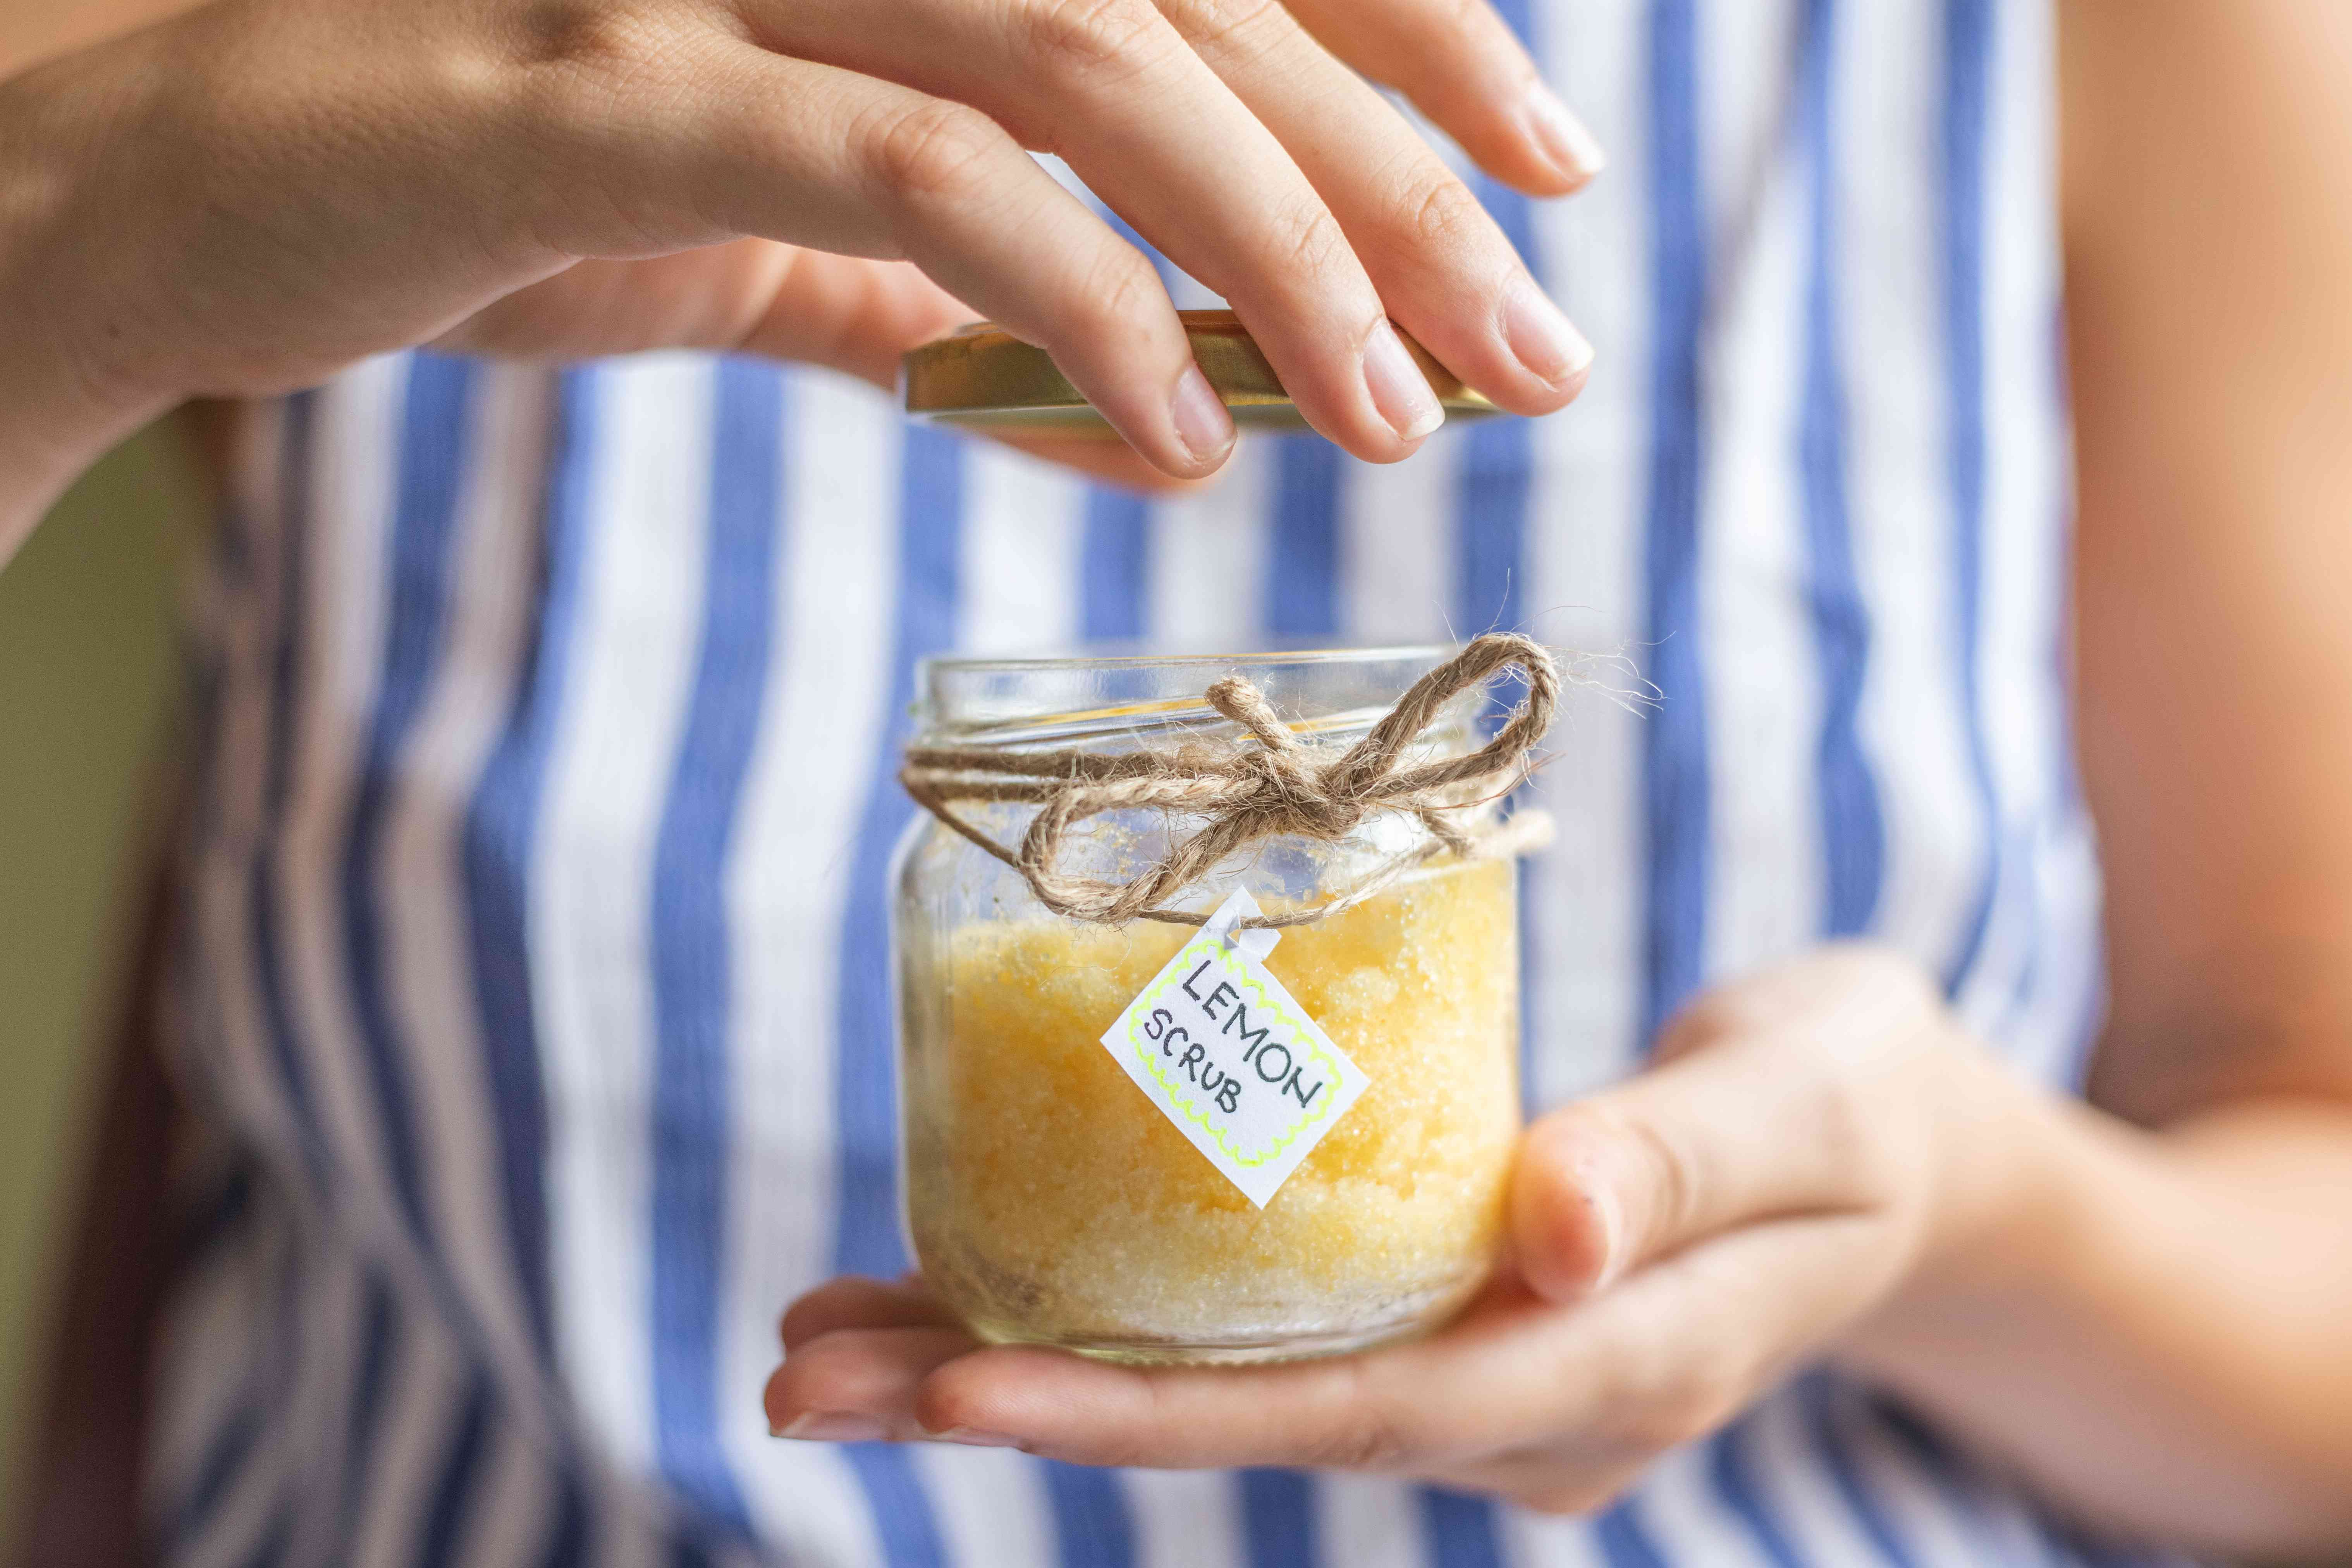 woman in striped top takes off lid of lemon salt scrub in glass container